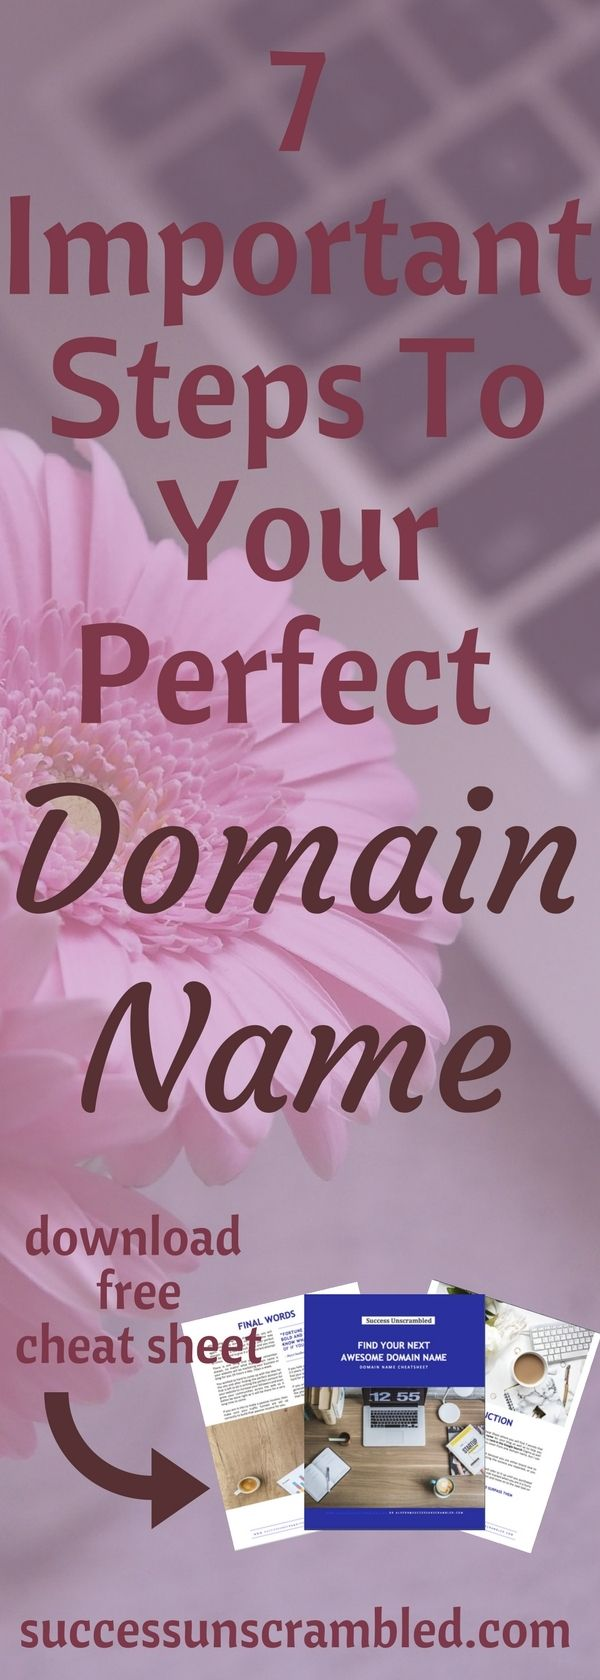 Finding your next domain name can be a challenge especially when you have a great idea for a domain name only to realise that it is already taken.  In the article 7 Important Steps To Your Perfect Domain Name you will be able to come up with 5-10 perfect names that you can choose from especially if you follow the advice.  I have supplied a helpful cheatsheet that you can use as frequently as needed. Happy domain name hunting. #domainname  #startups #entrepreneur  #bloggingtips